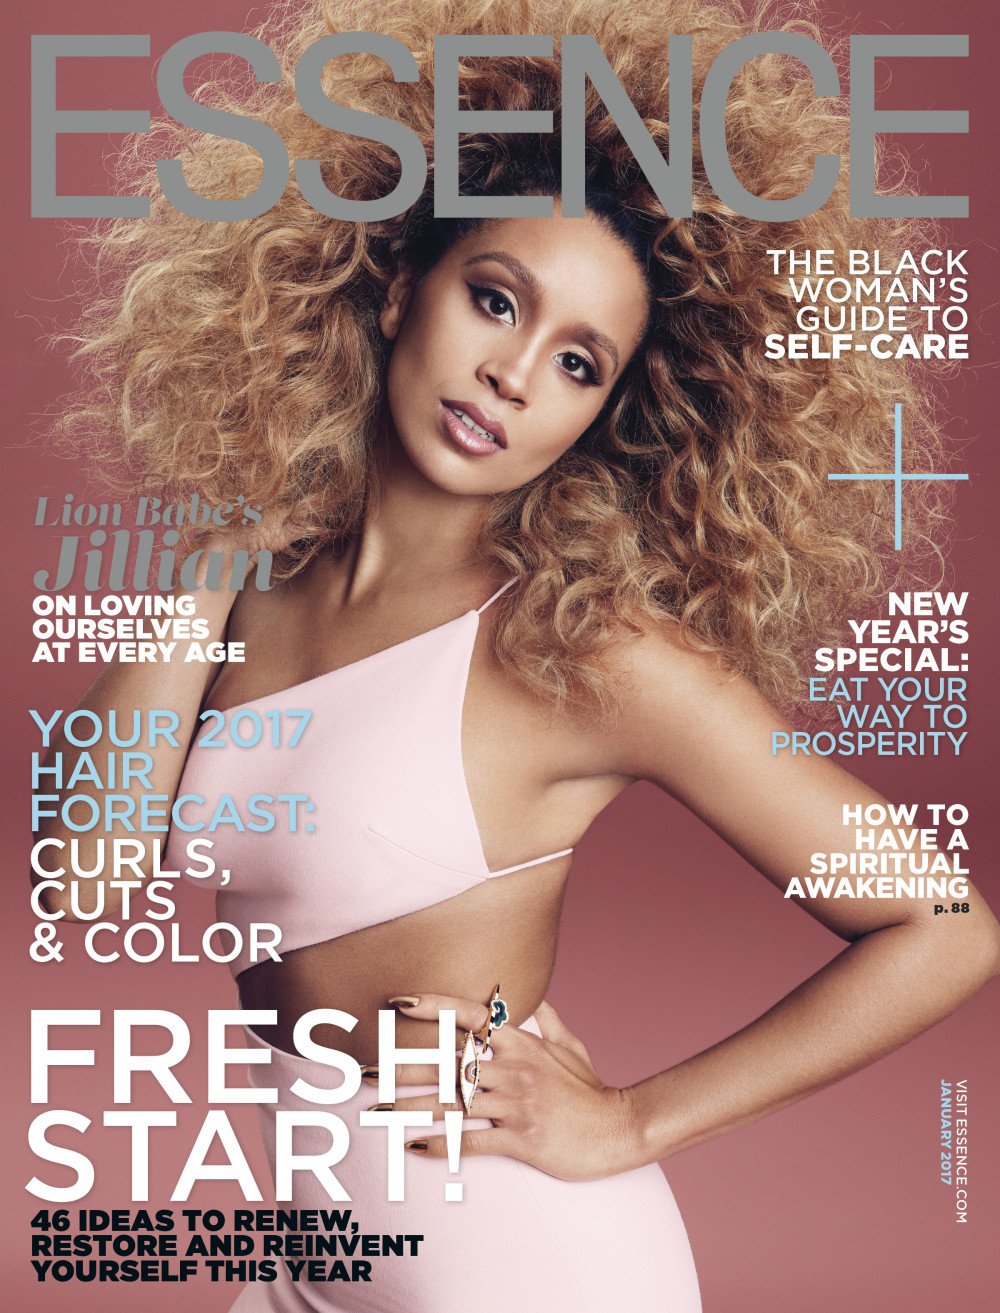 essence-cover-vanessa-williams-daughter-jillian-hervey-bellanaija-1